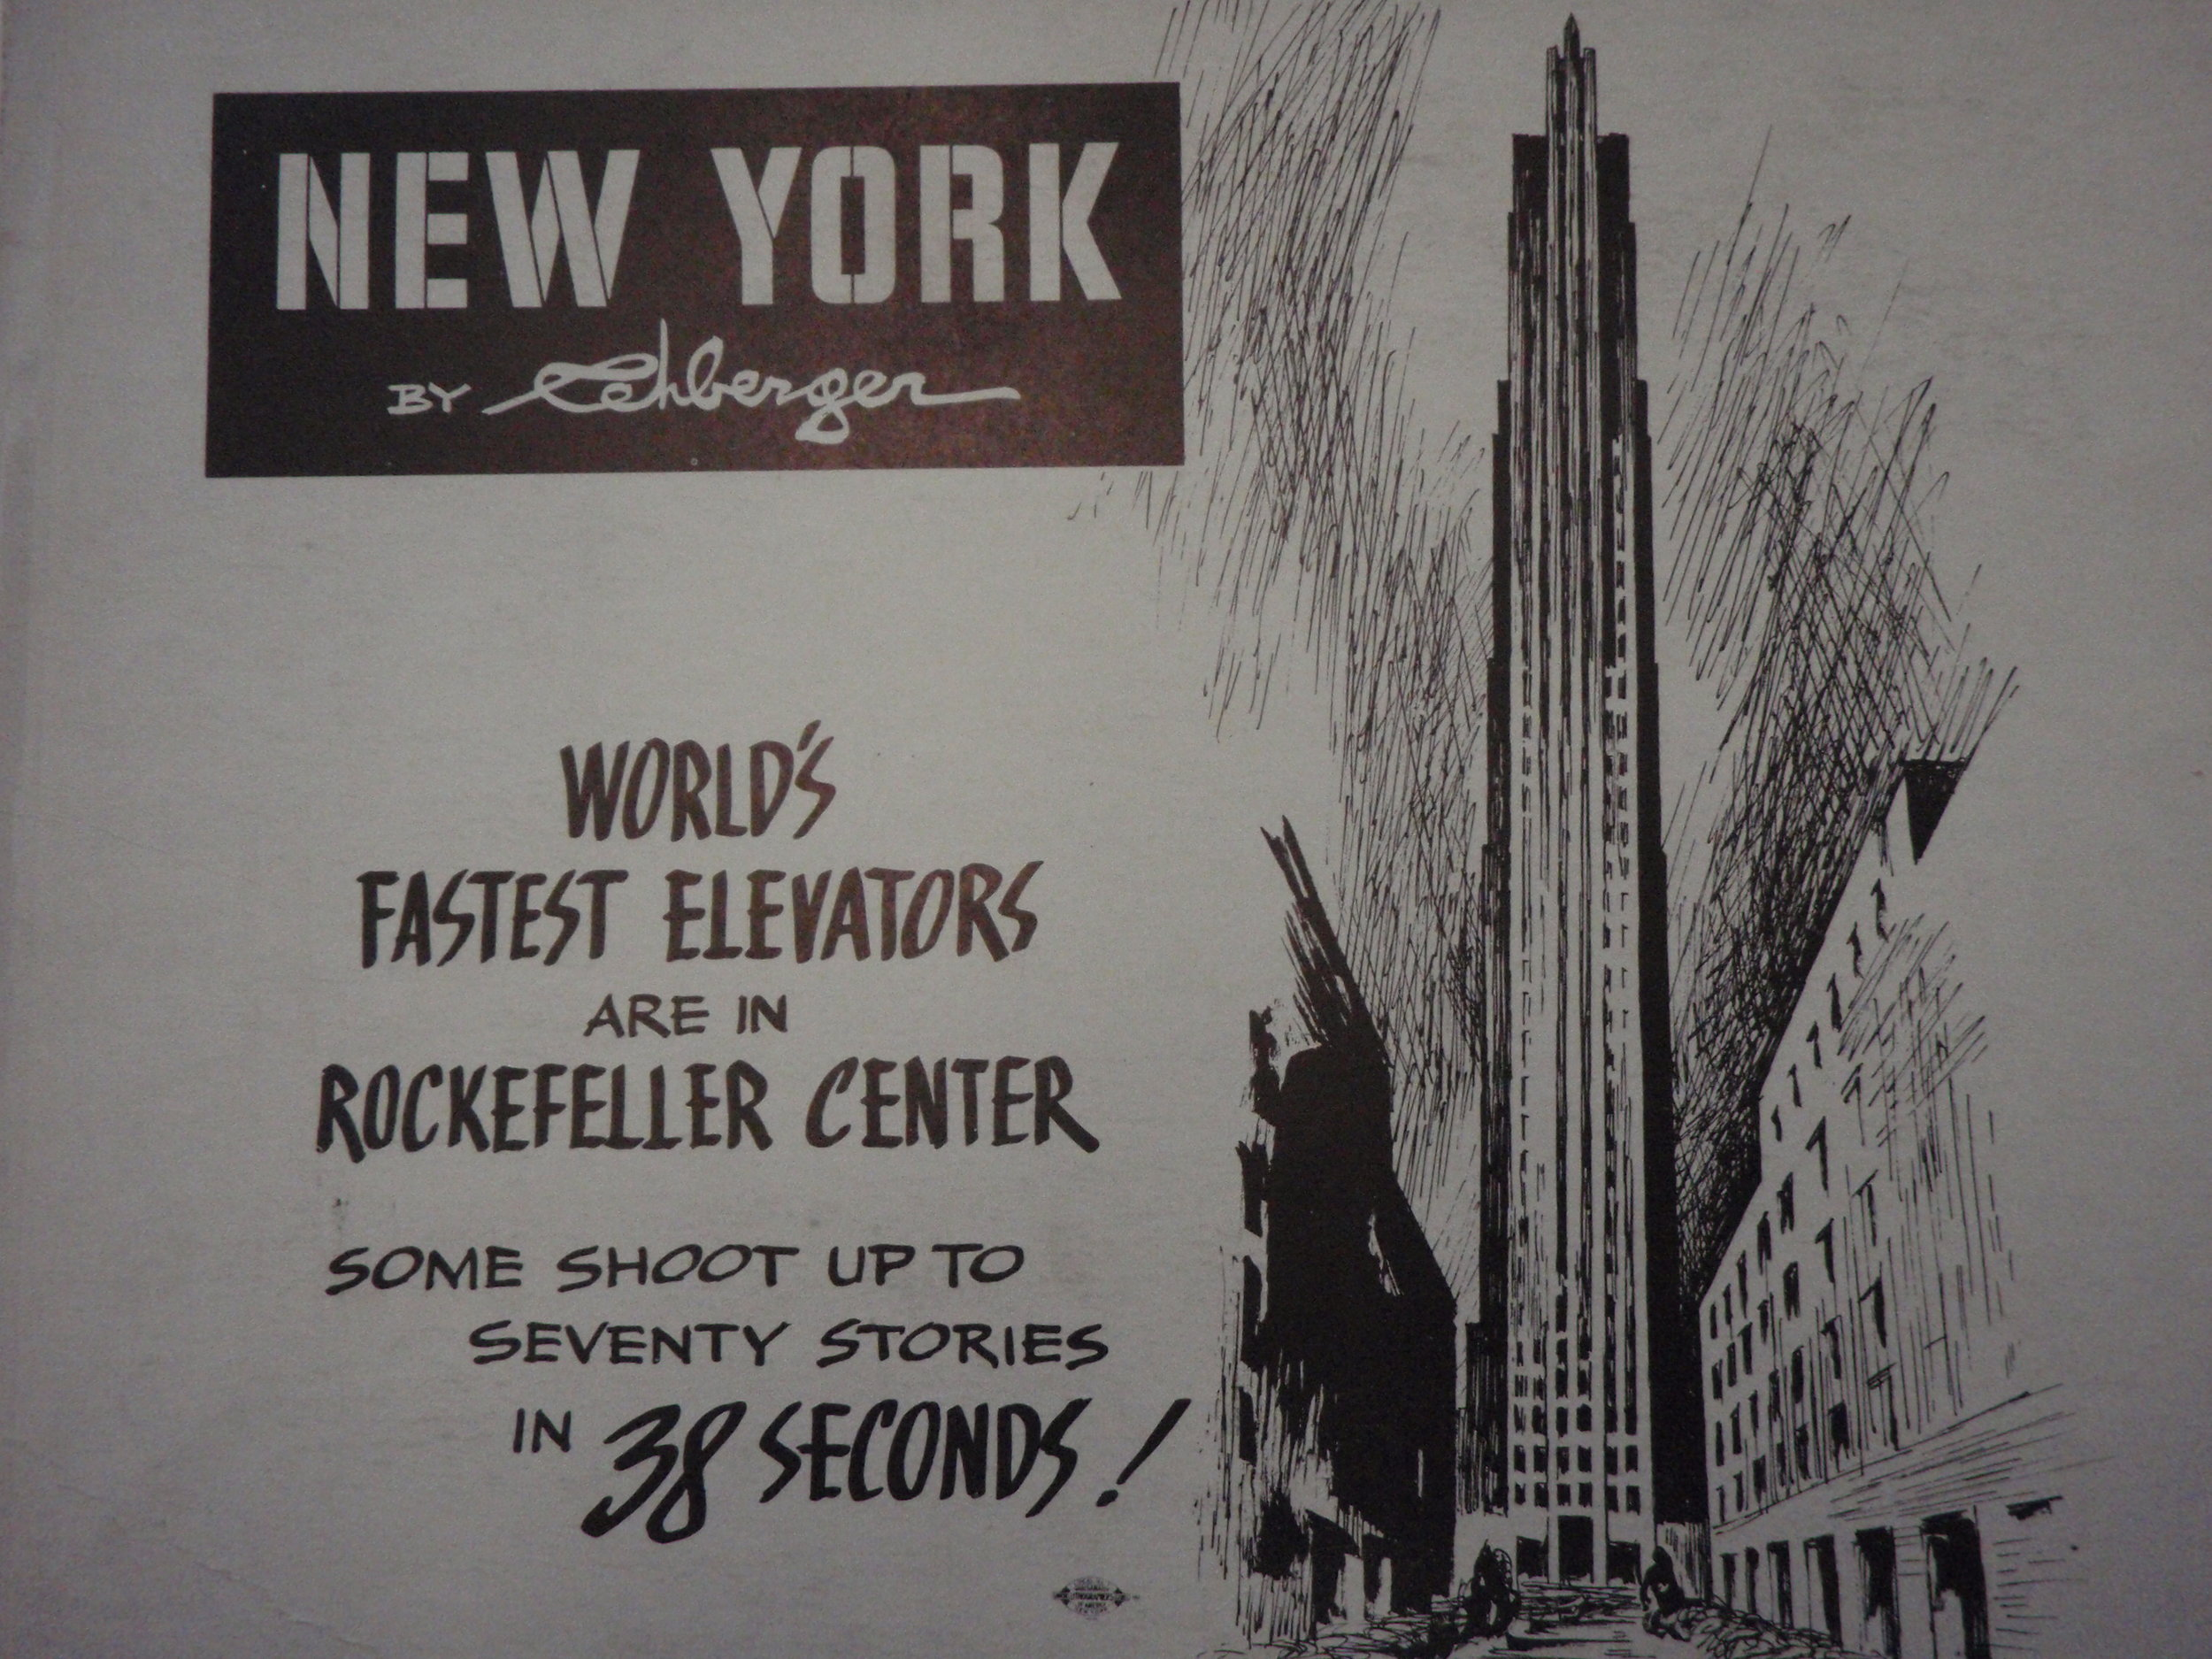 NEW YORK by REHBERGER 1948 #17   Subway Poster  -  New York Subways Advertising Co..JPG